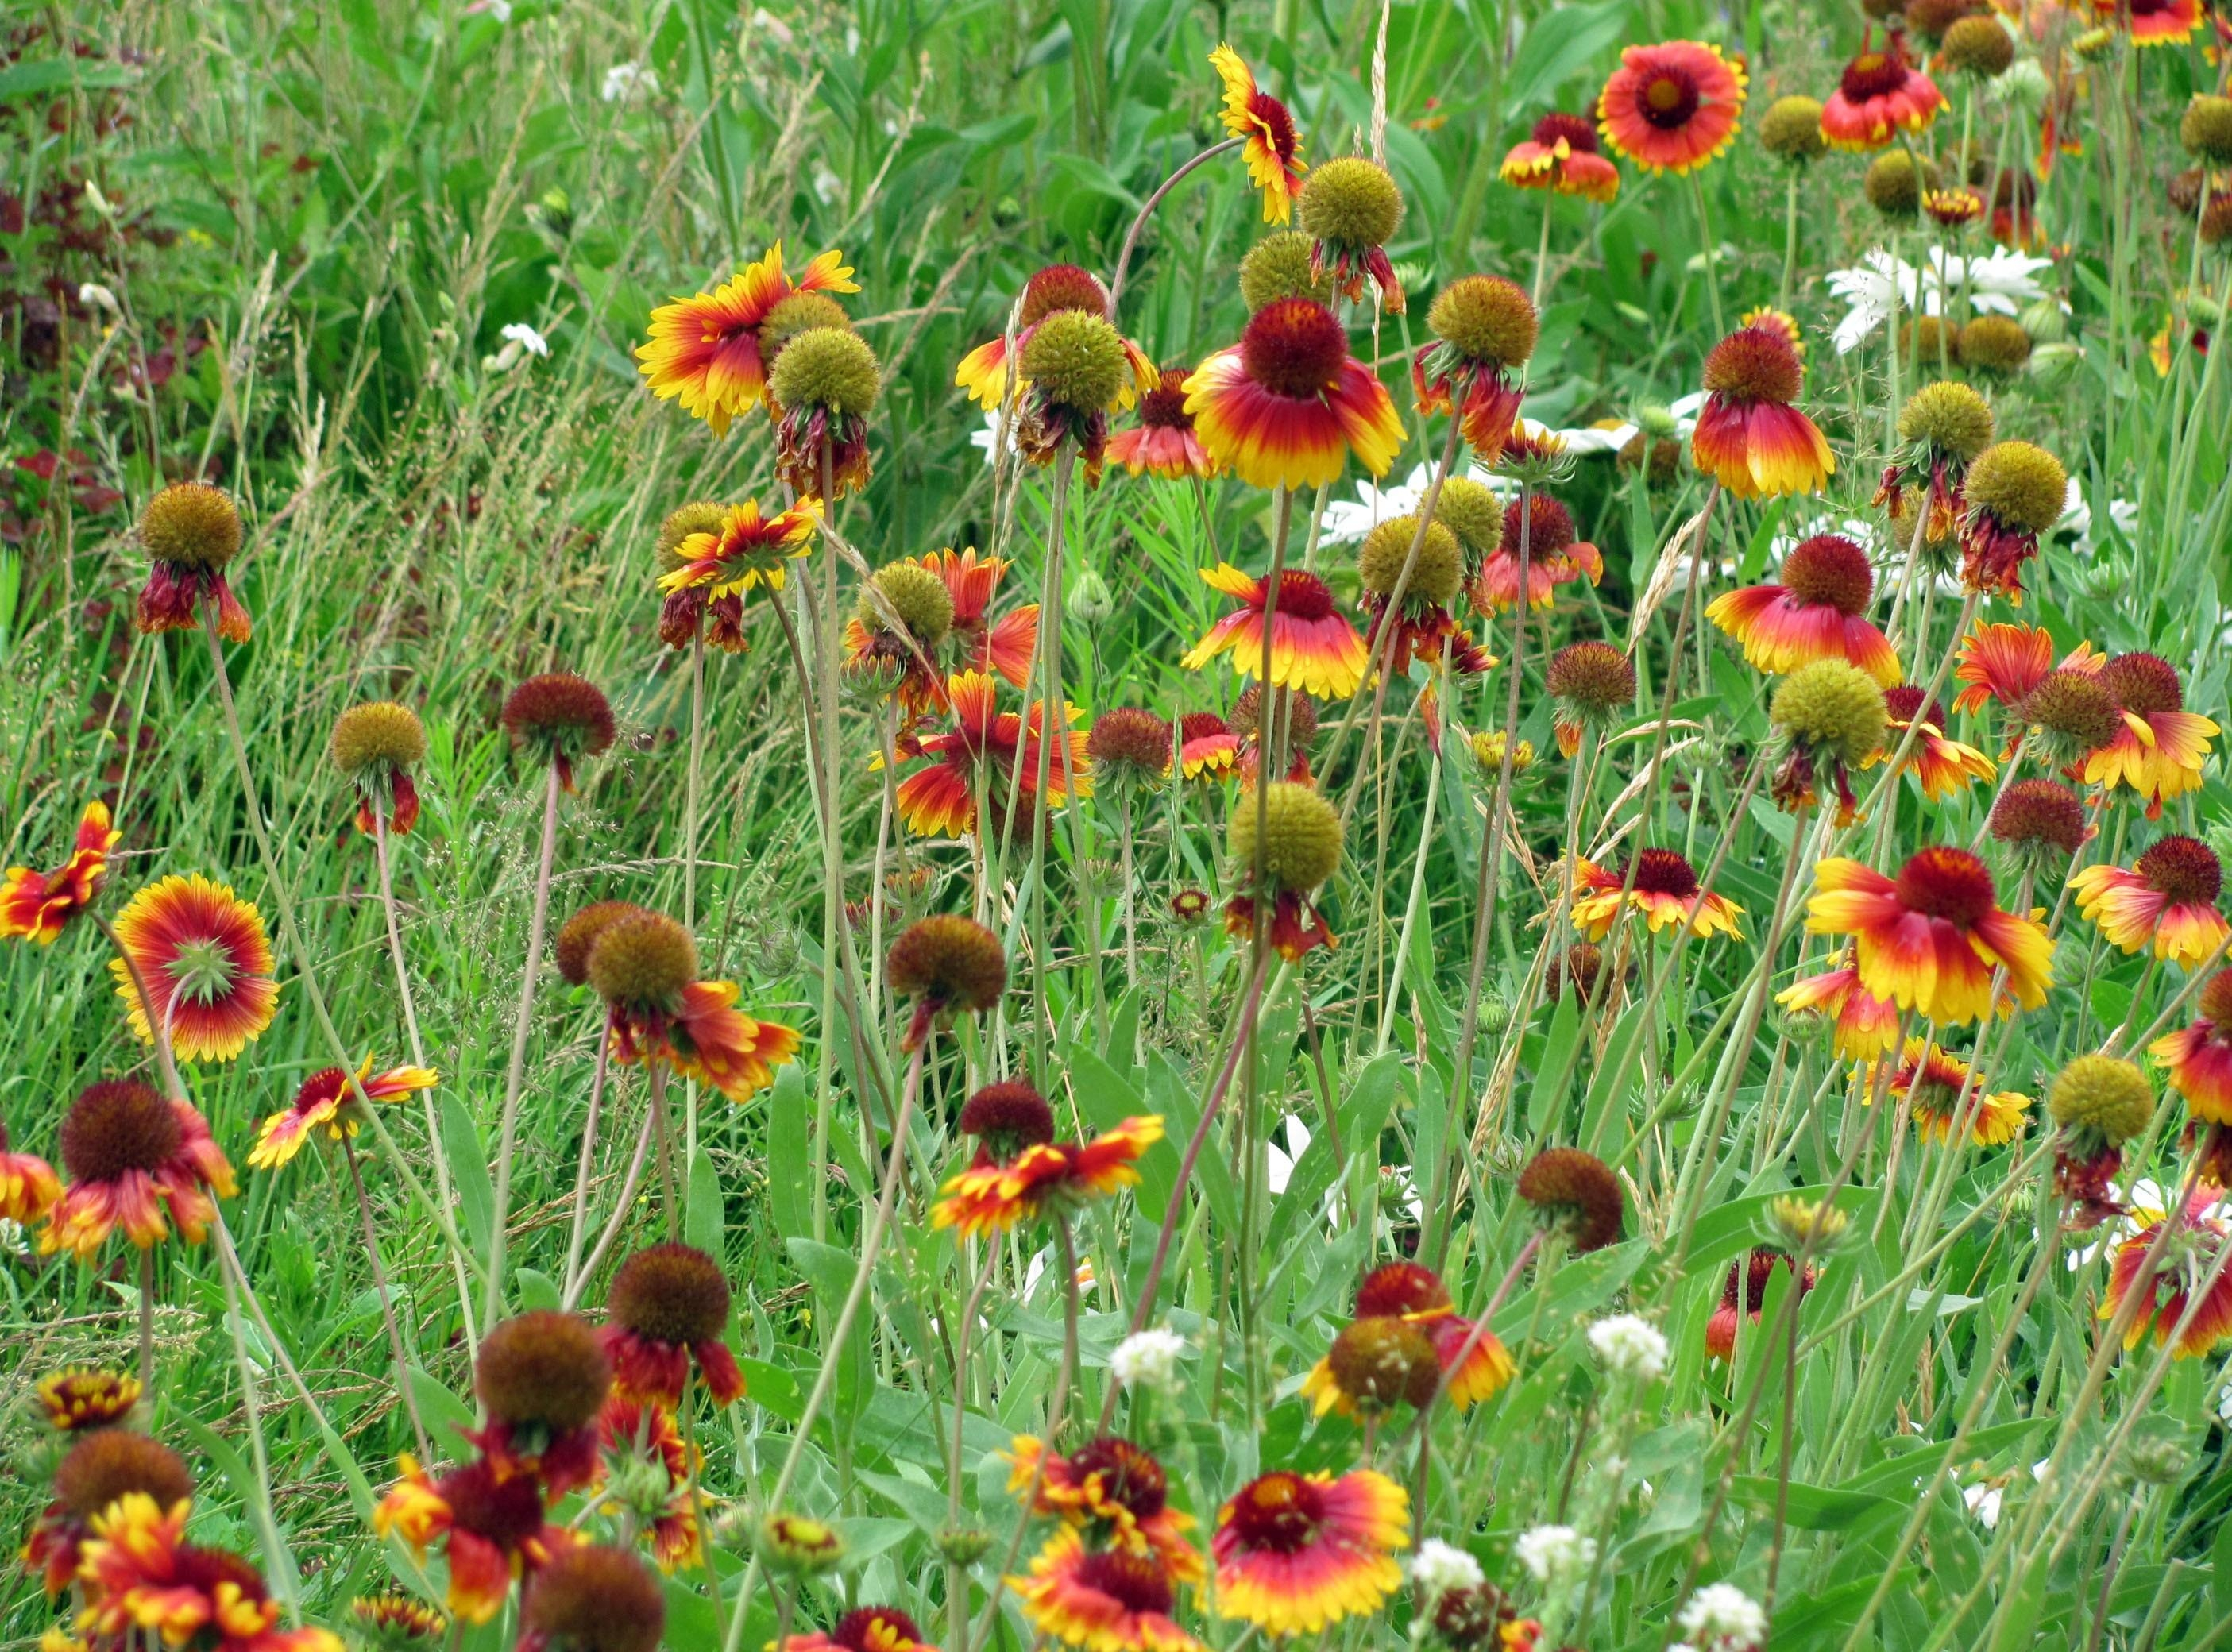 88729 download wallpaper Flowers, Gaillardia, Camomile, Polyana, Glade, Greens, Grass screensavers and pictures for free